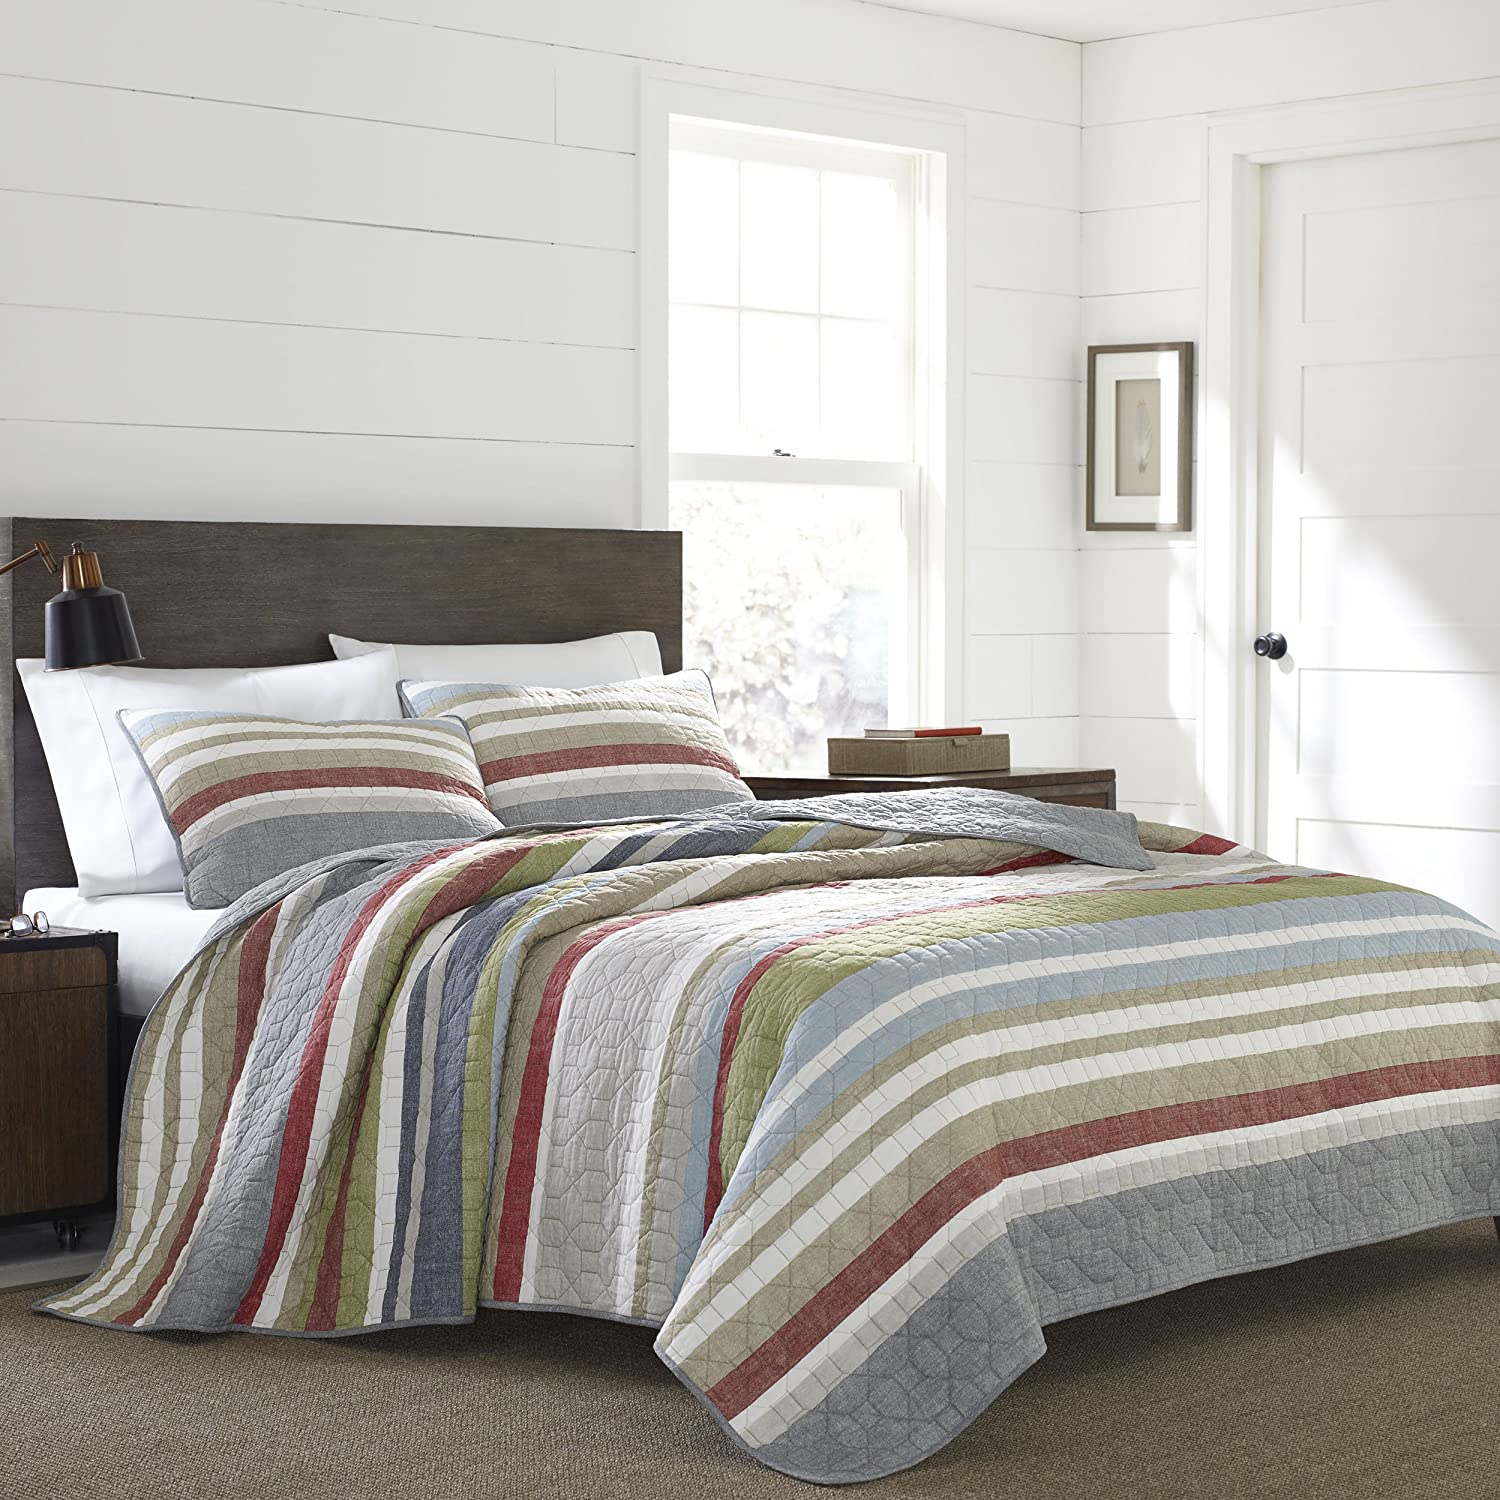 Eddie Bauer 221108 Salmon Ladder Reversible Quilt Set, Full/Queen, Salmon